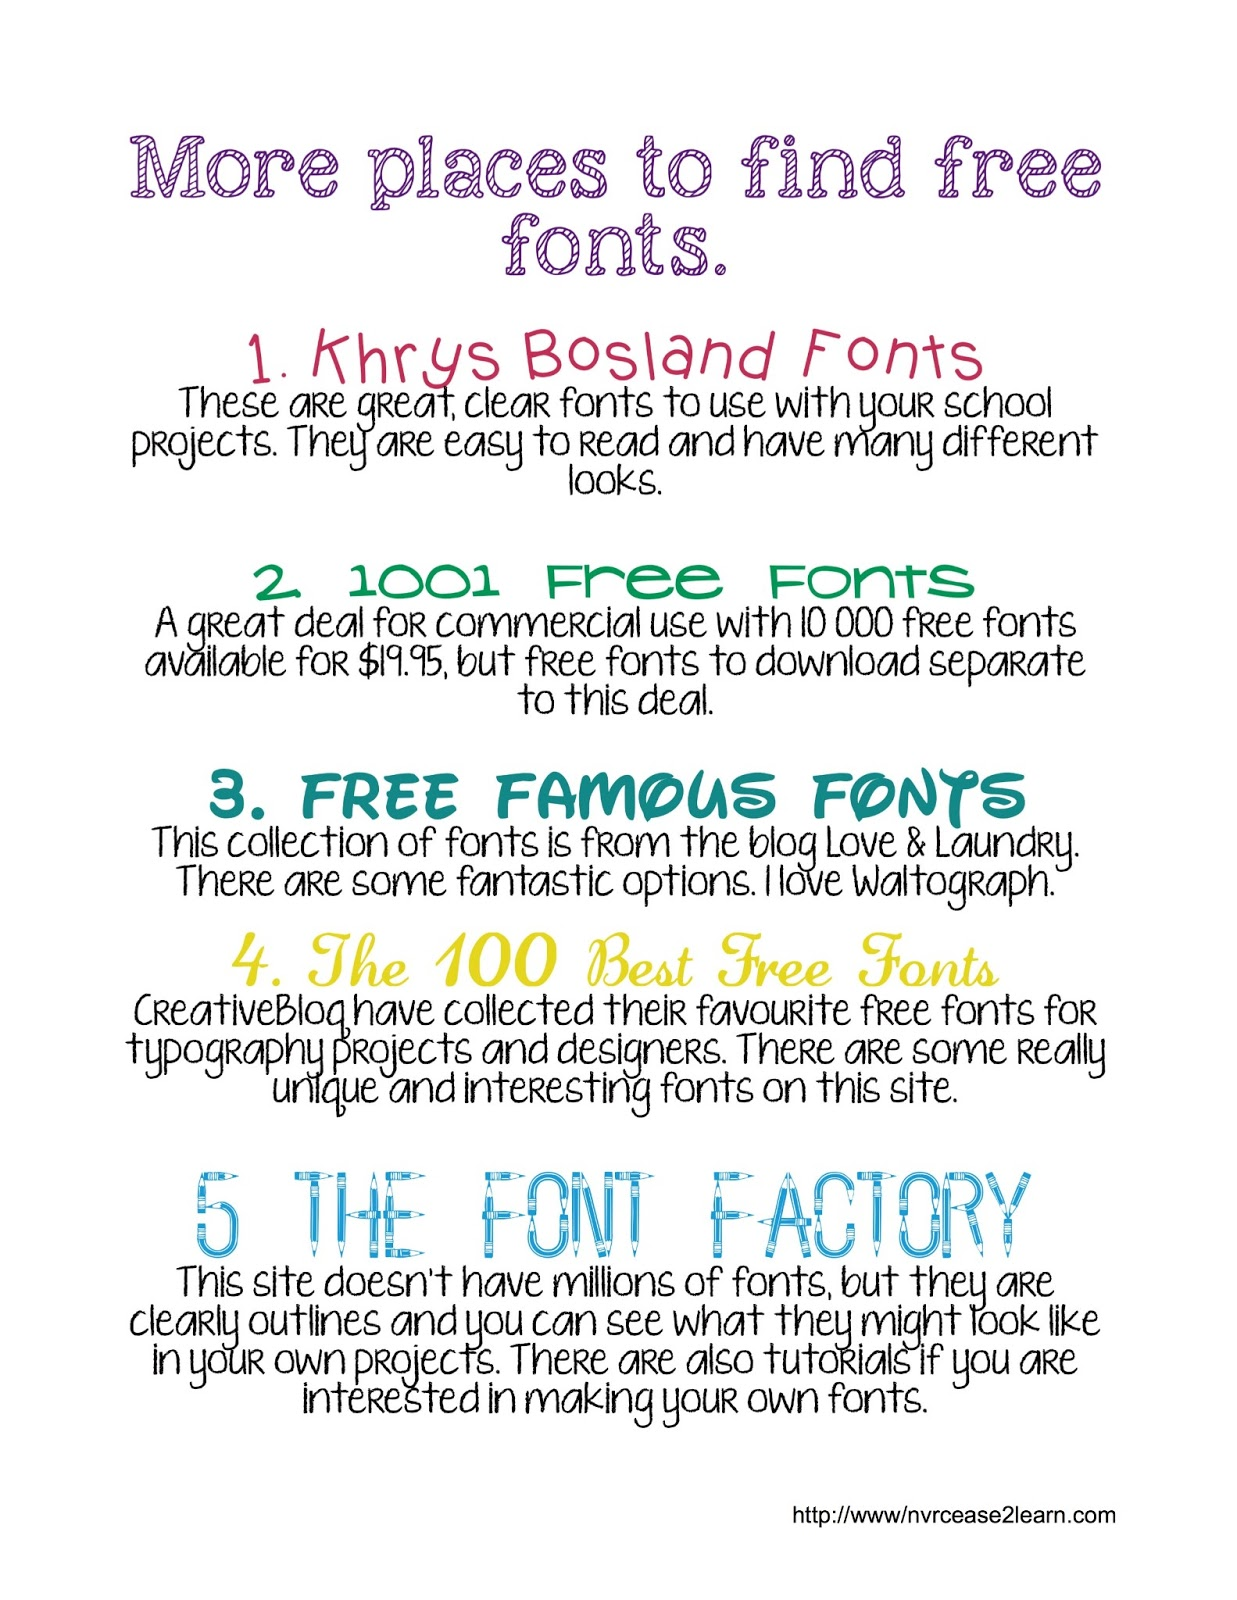 Never cease 2 learn font roundup 1 khrys bosland fonts 2 1001 free fonts 3 free famous fonts 4 the 100 best free fonts 5 the font factory baditri Gallery